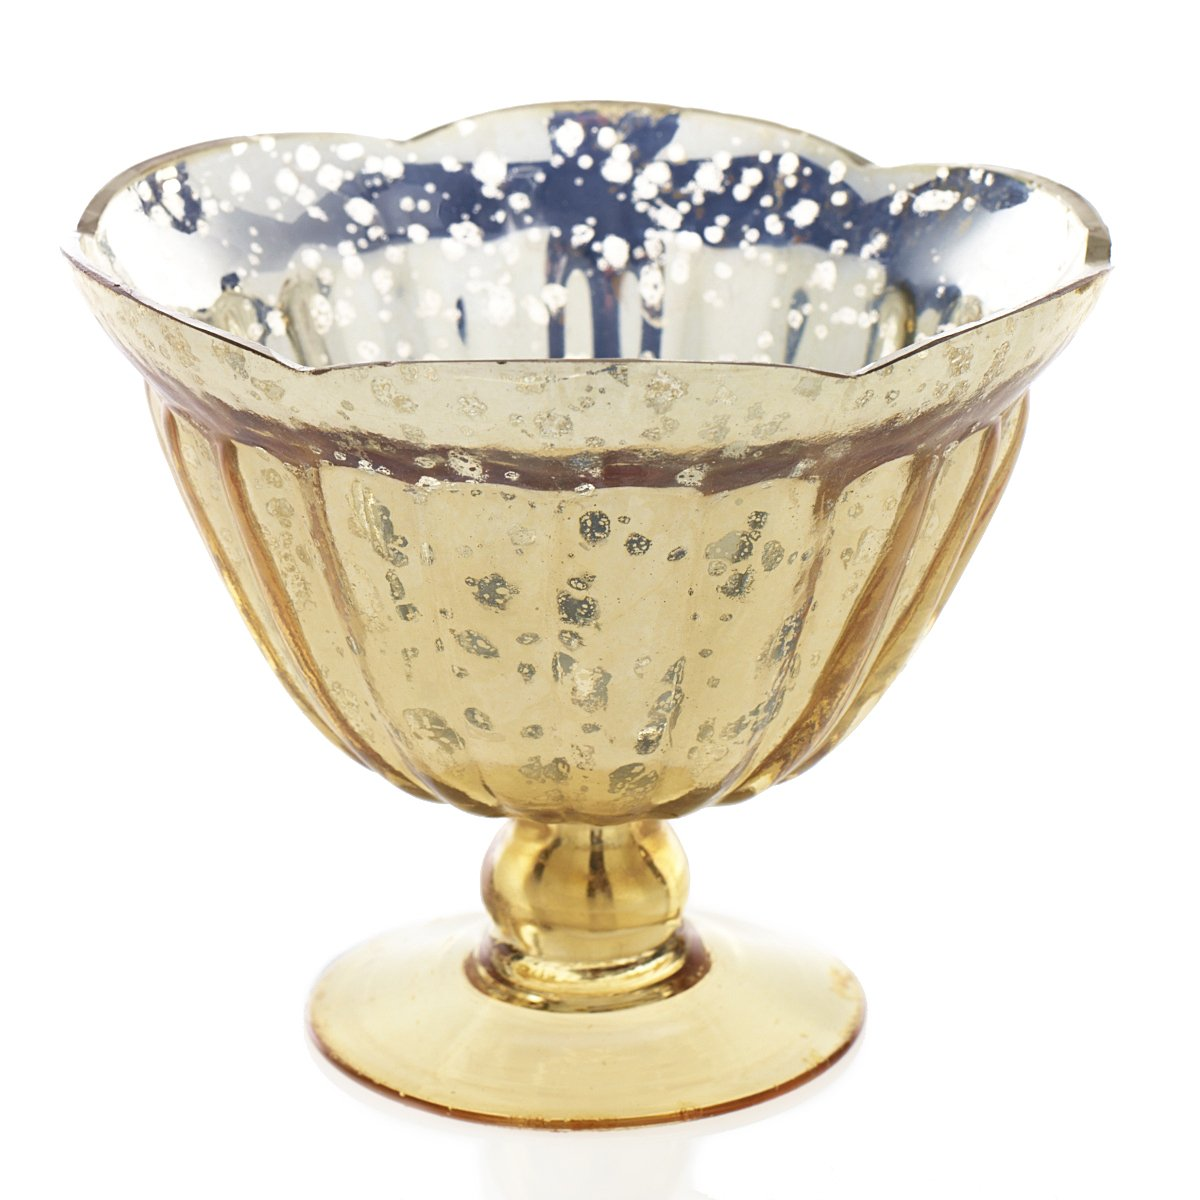 Mercury Glass Compote w/ Pedestal Base, 5.5 in. tall, Scalloped, Gold Accent Decor Inc.